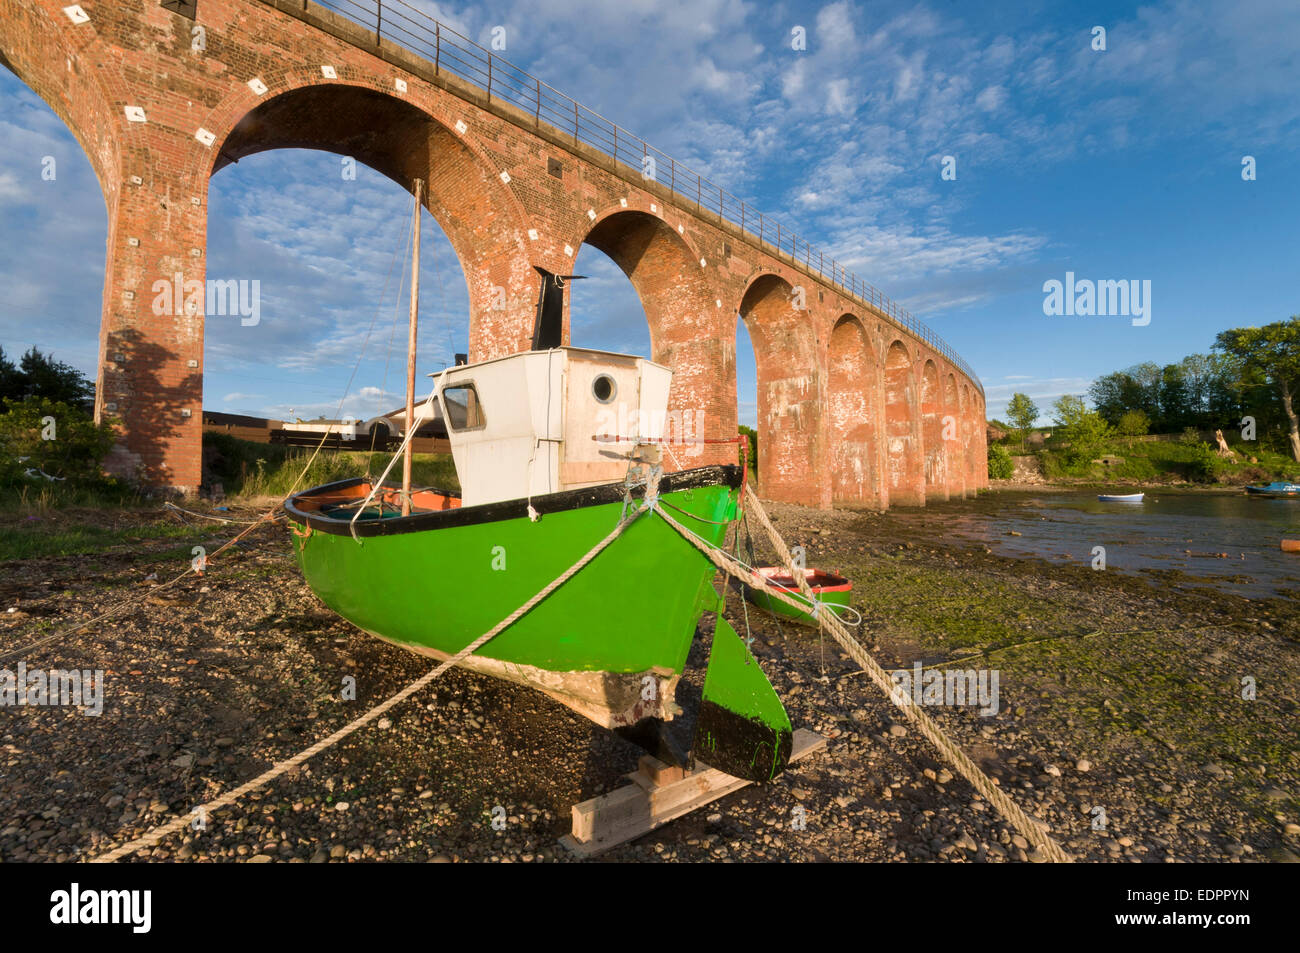 montrose basin viaduct train railway bridge mooring - Stock Image